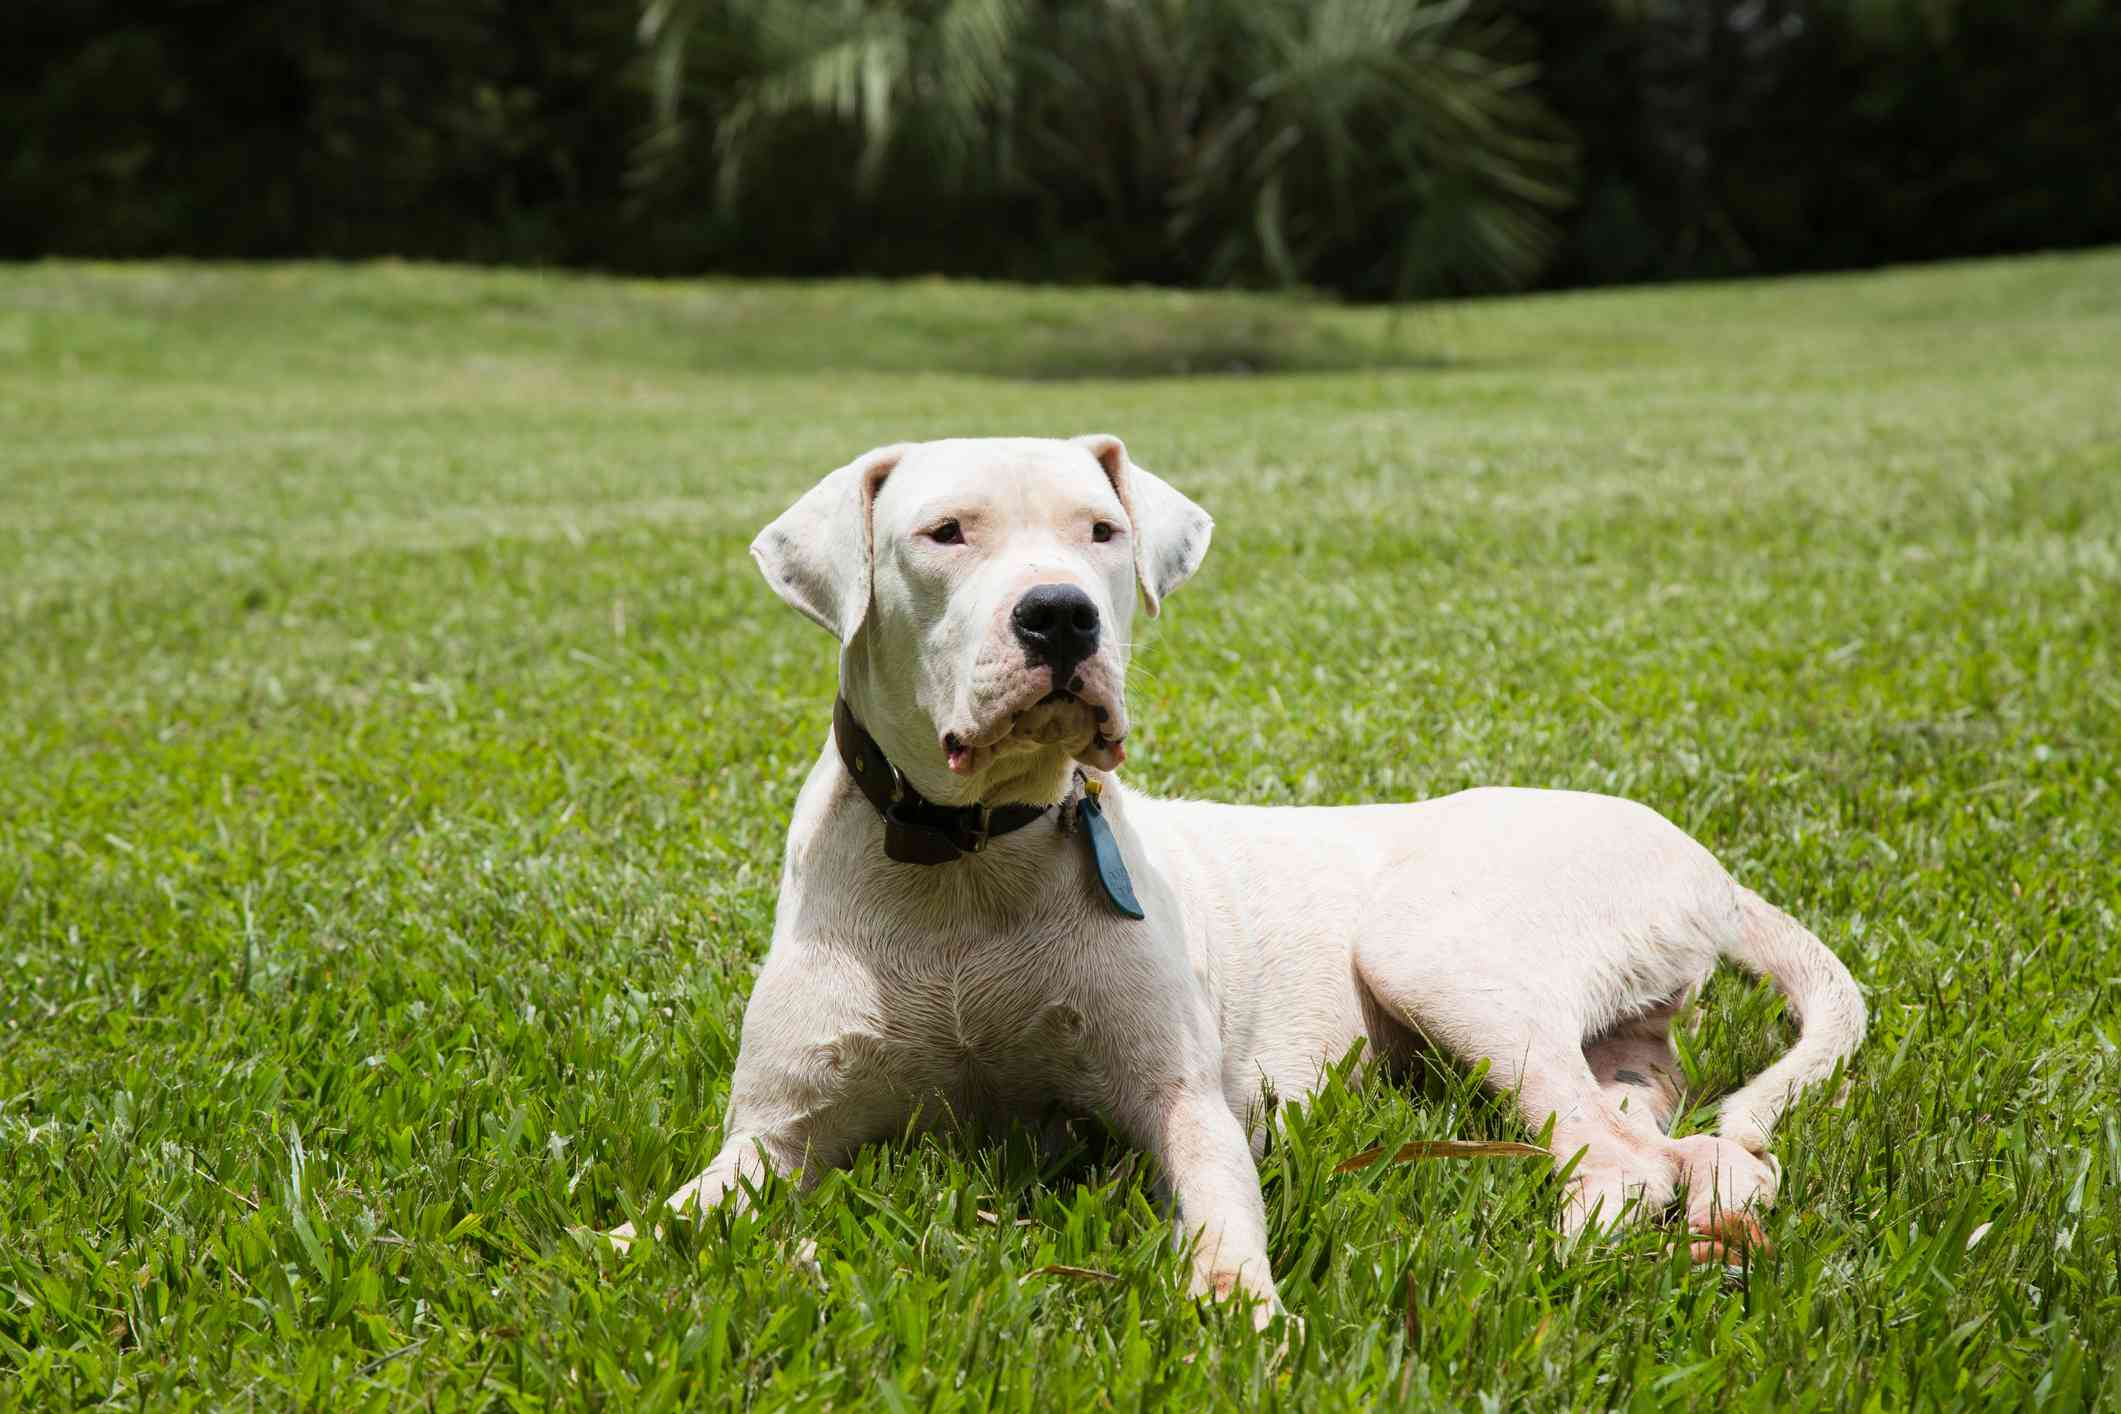 Dogo Argentino lying on a lawn